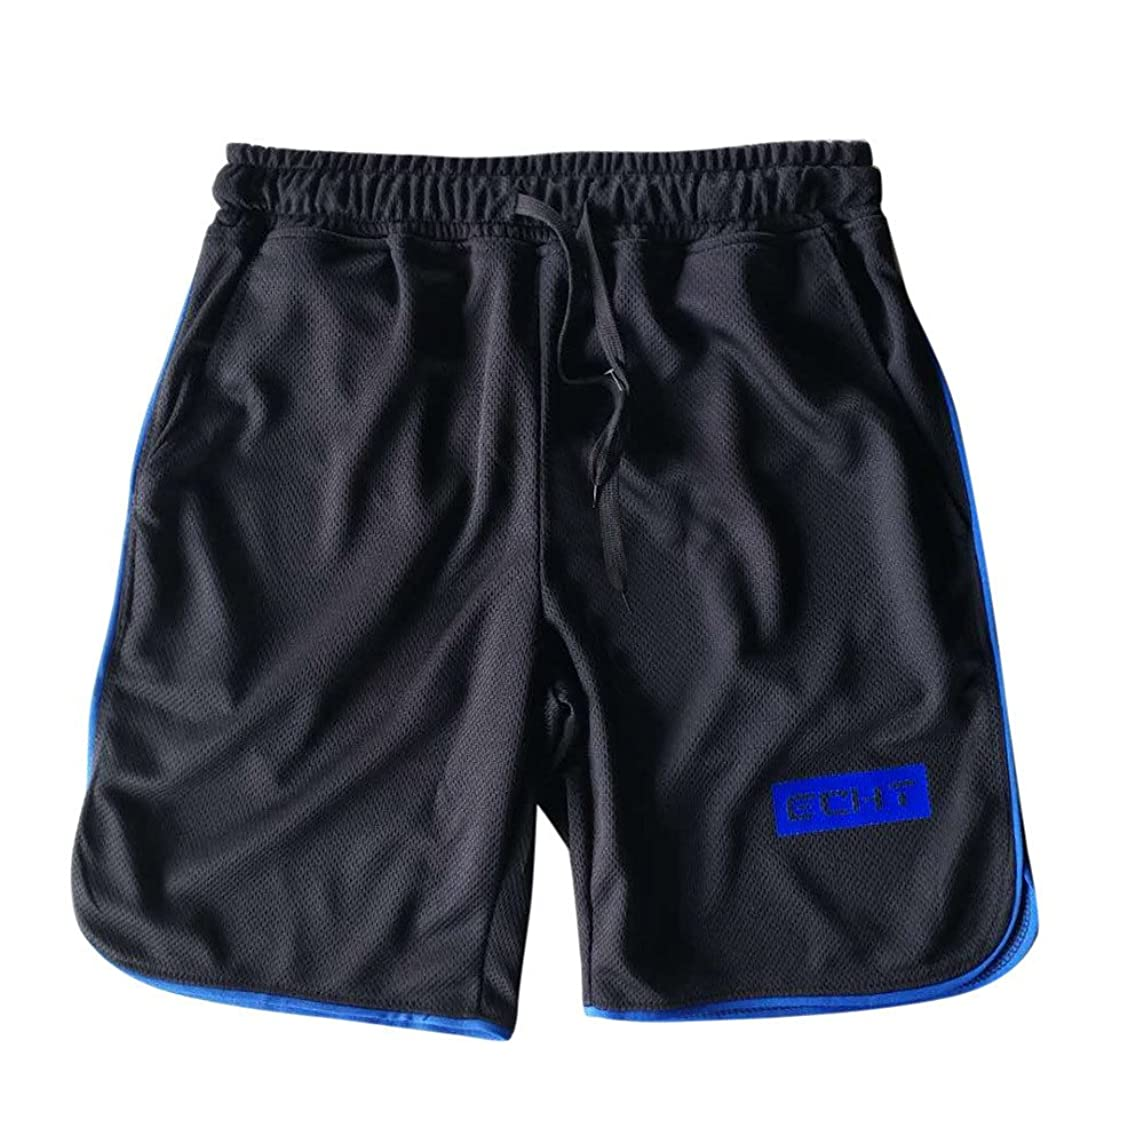 Farmerl Men's Shorts Gym Athletic Training Cycling Workout Fitness Short Pants